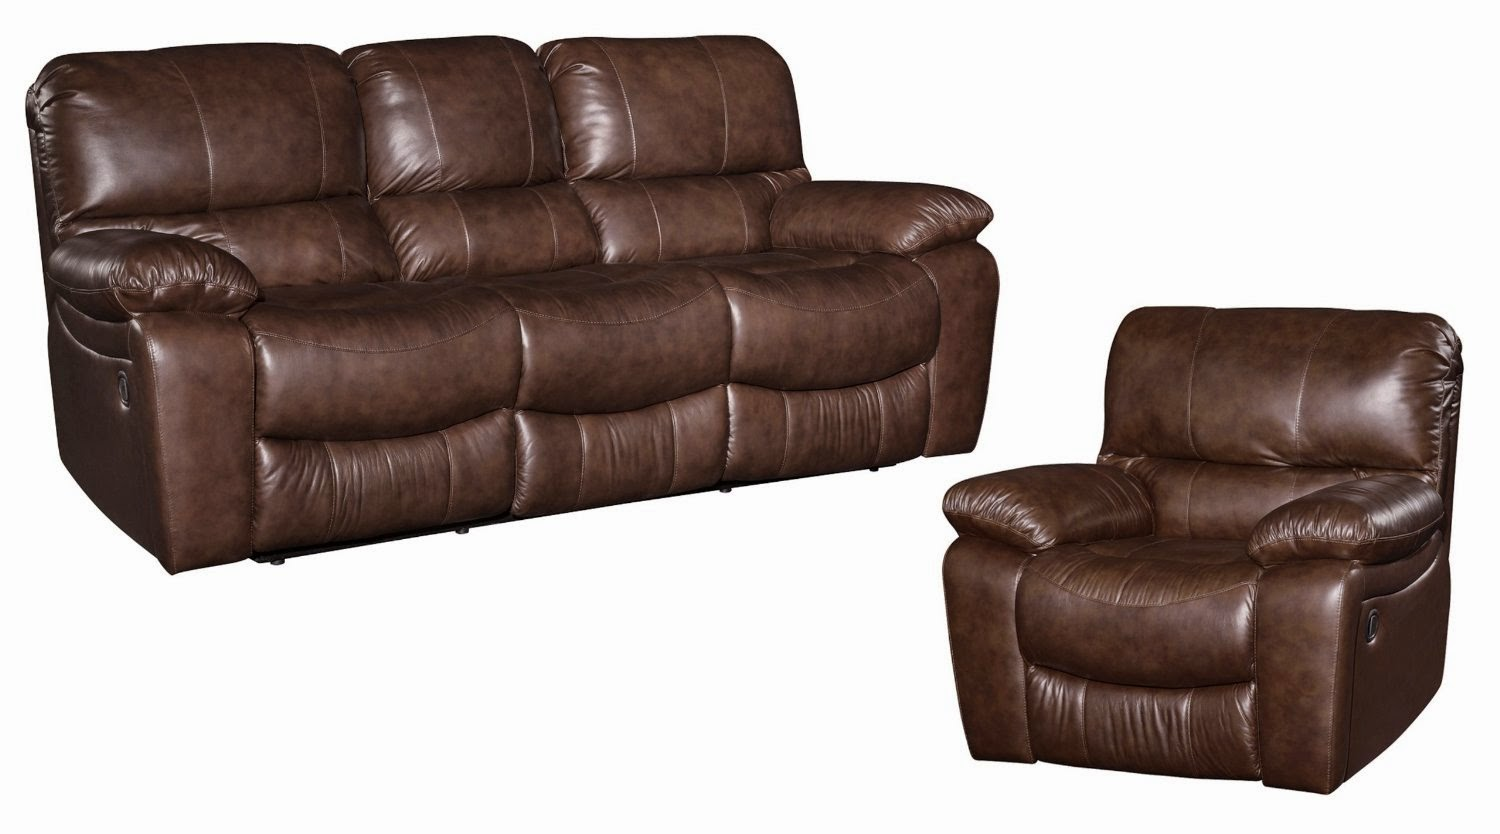 Reclining Sofa Sets Sale: Leather Recliner Sofa Sets